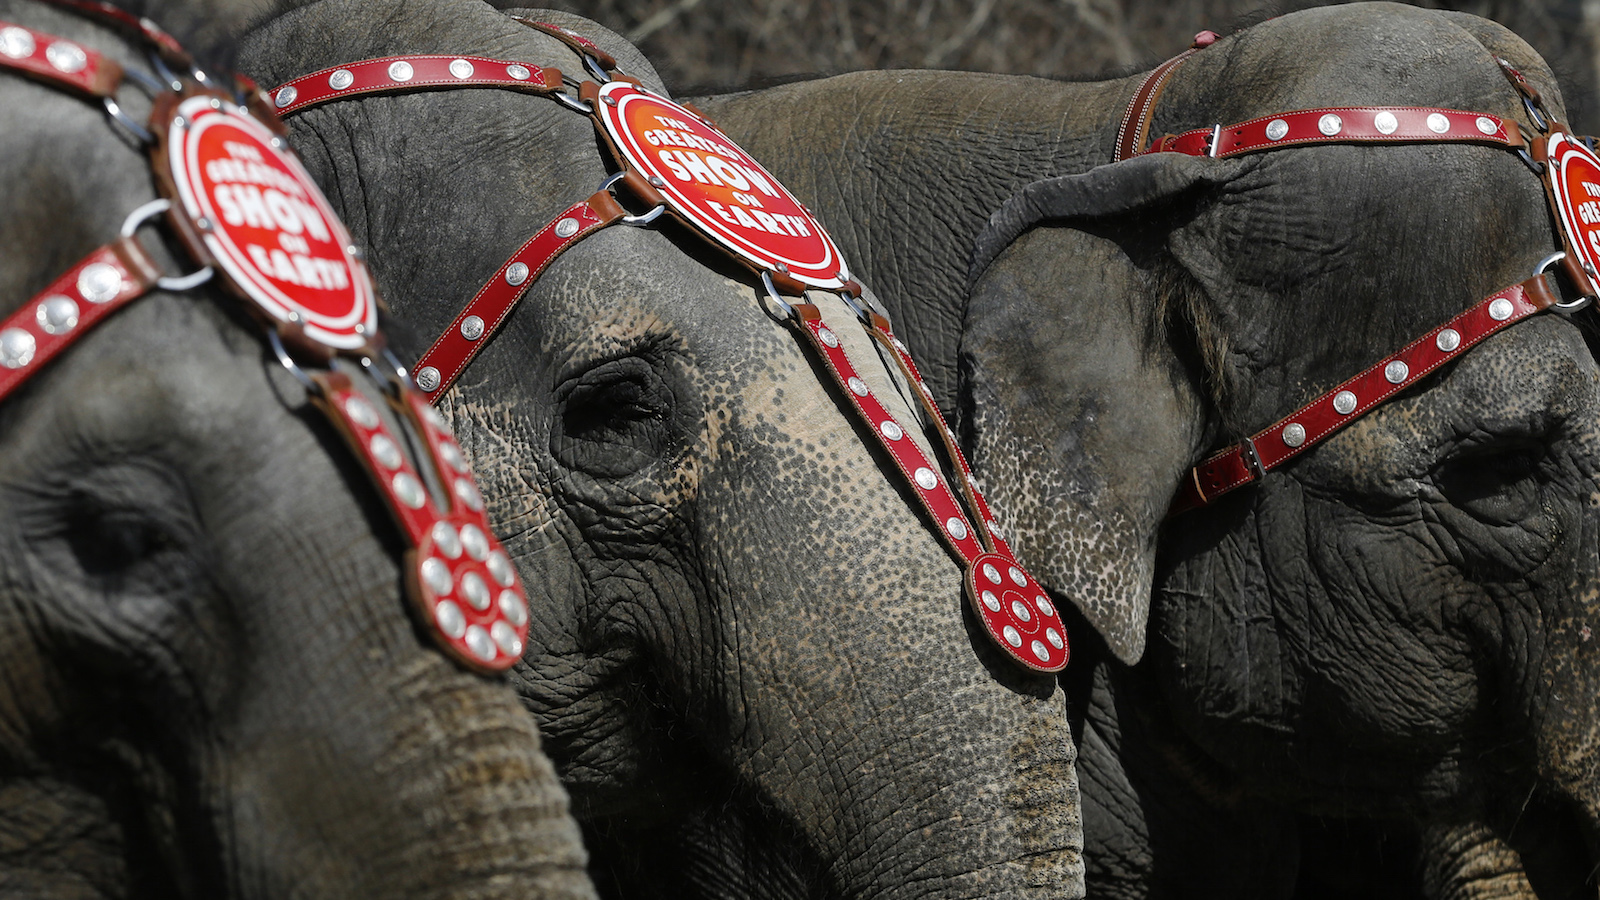 Elephants from the Ringling Bros. and Barnum & Bailey Circus line up for a photo under the Brooklyn Bridge in the Brooklyn Borough of New York, March 20, 2013. The circus will be performing in Brooklyn from March 20 till April 1.  REUTERS/Brendan McDermid (UNITED STATES - Tags: ANIMALS SOCIETY) - RTR3F8MX